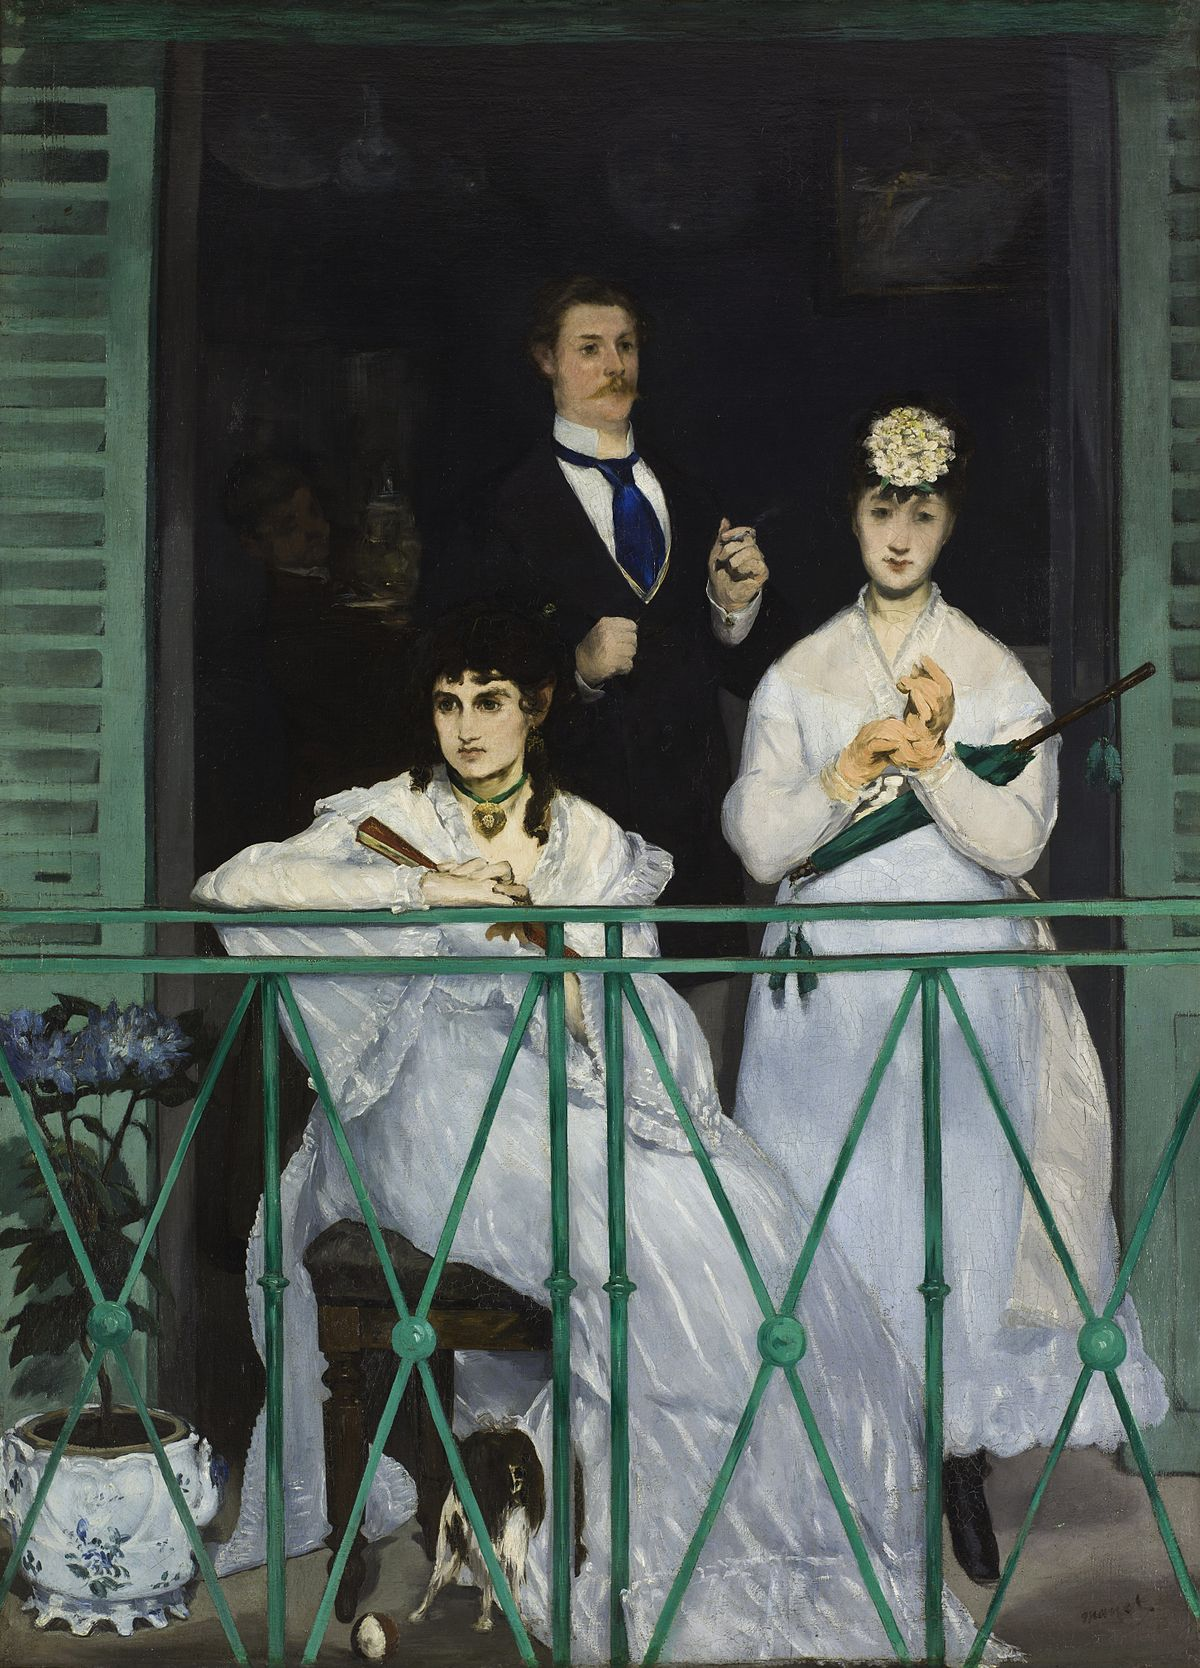 Graham was assigned Edouard Manet's  The Balcony  (1868-69) for the field school.